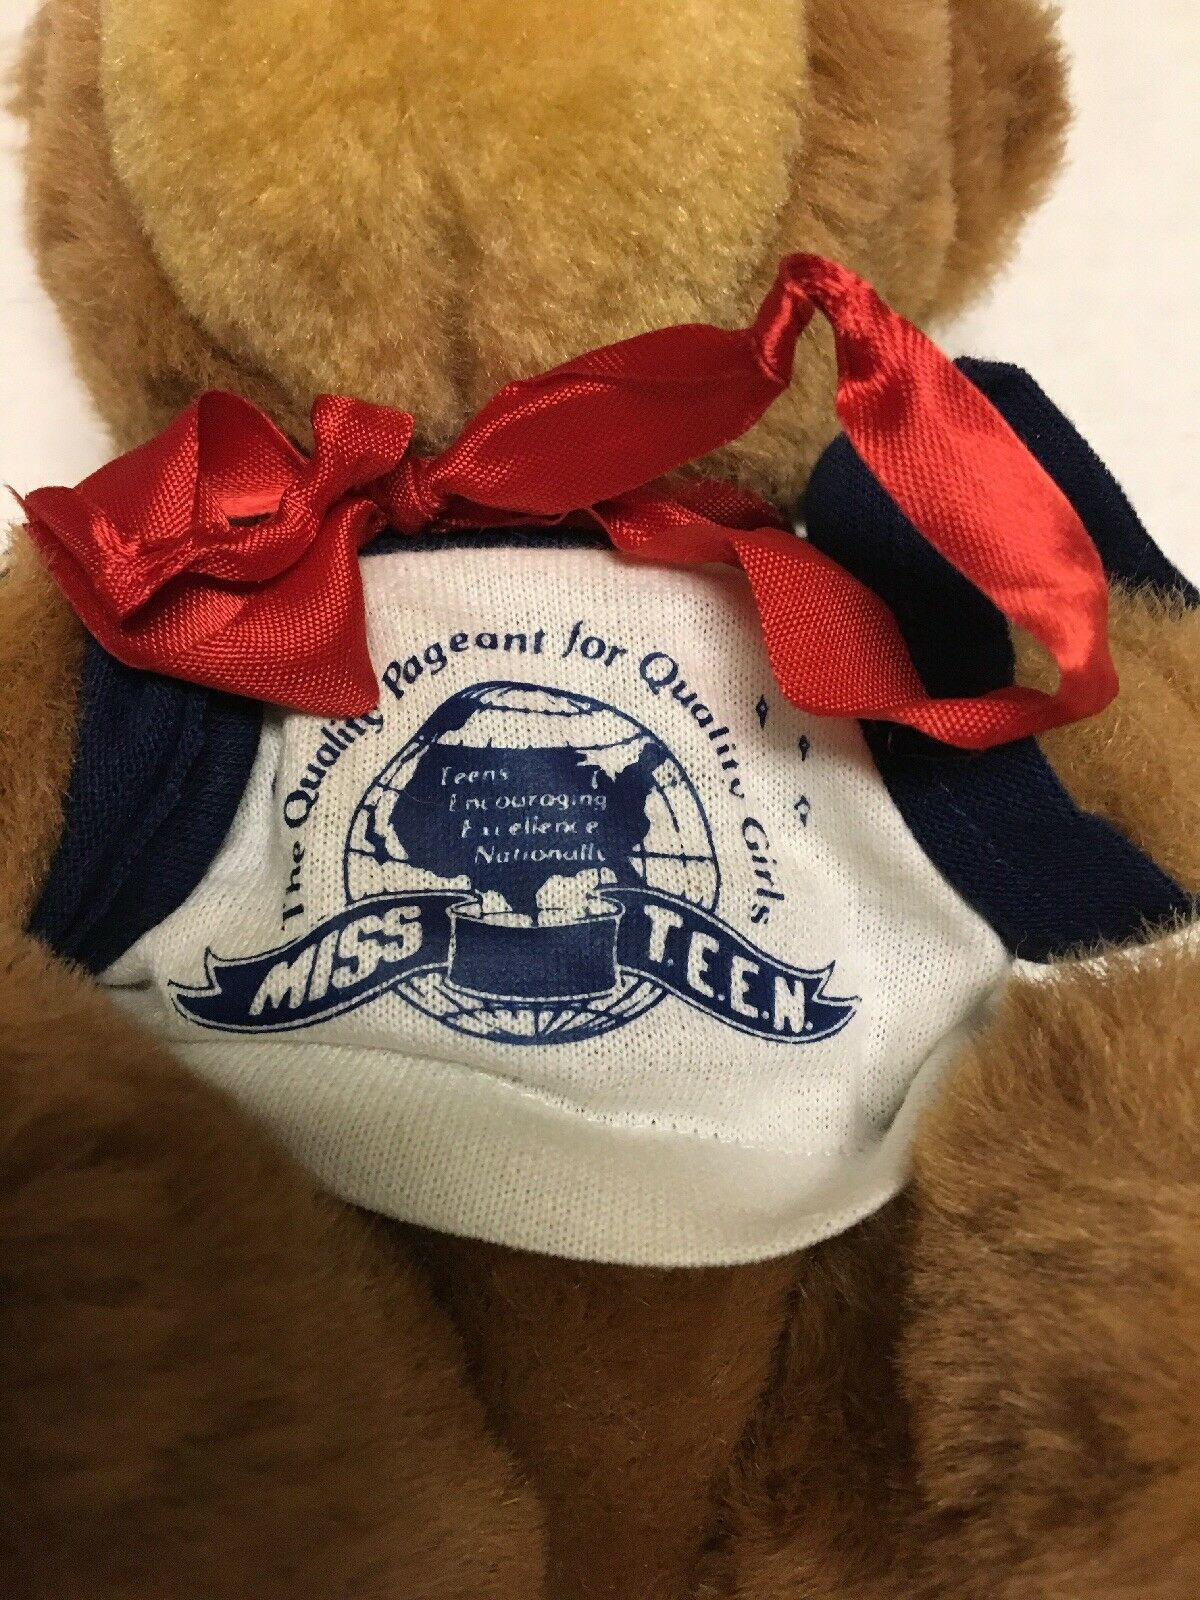 Vtg Miss Teen Beauty Pageant Plush Teddy Bear Long Prairie Minnesota MN Trudy